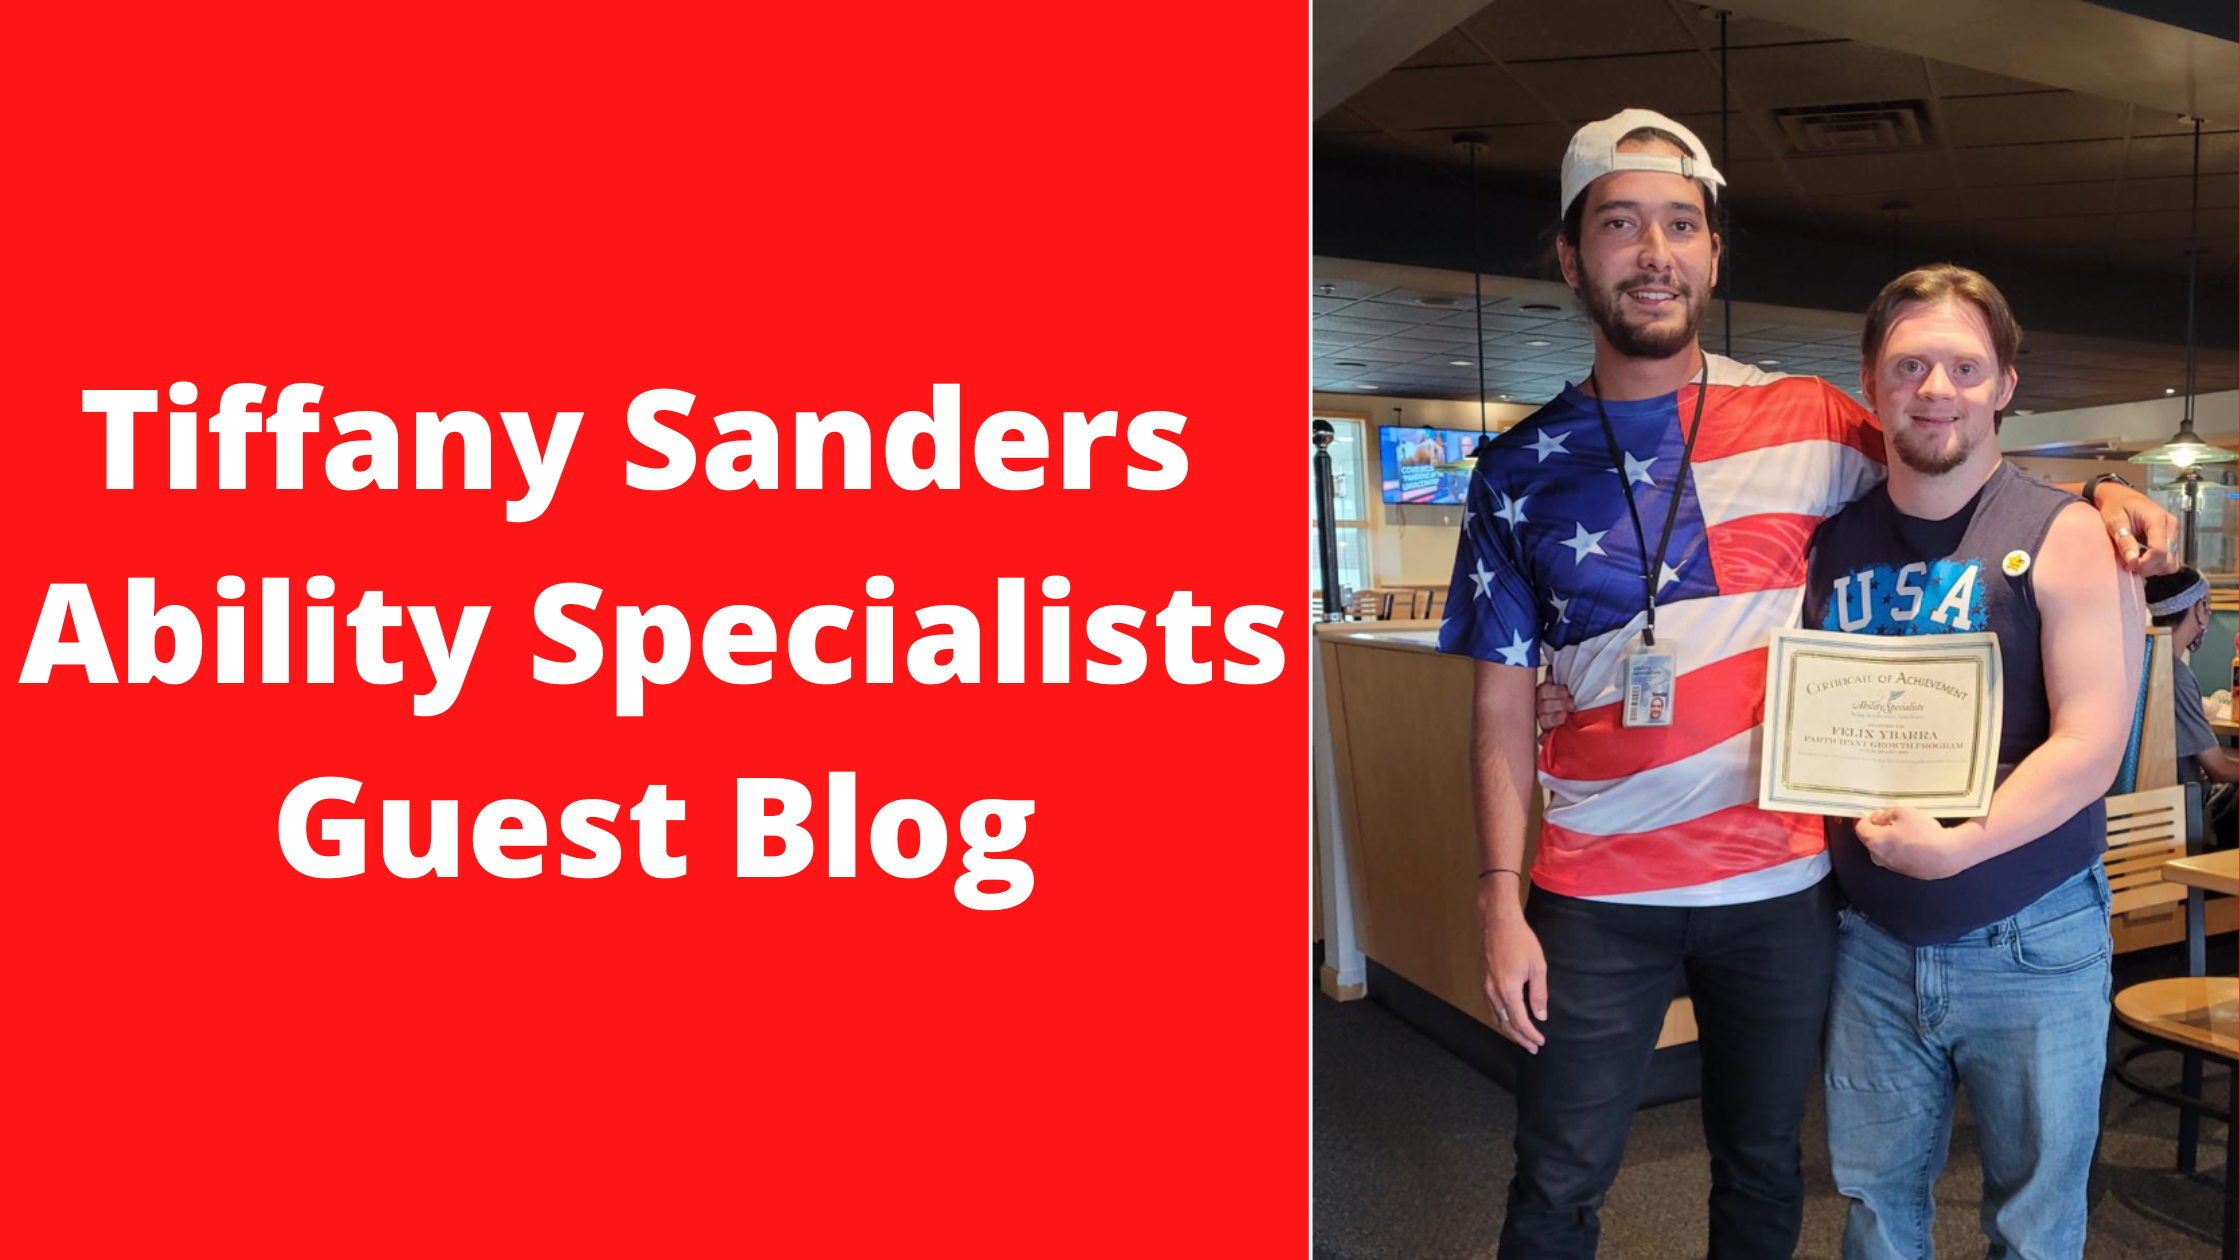 Tiffany Sanders Ability Specialists Guest Blog